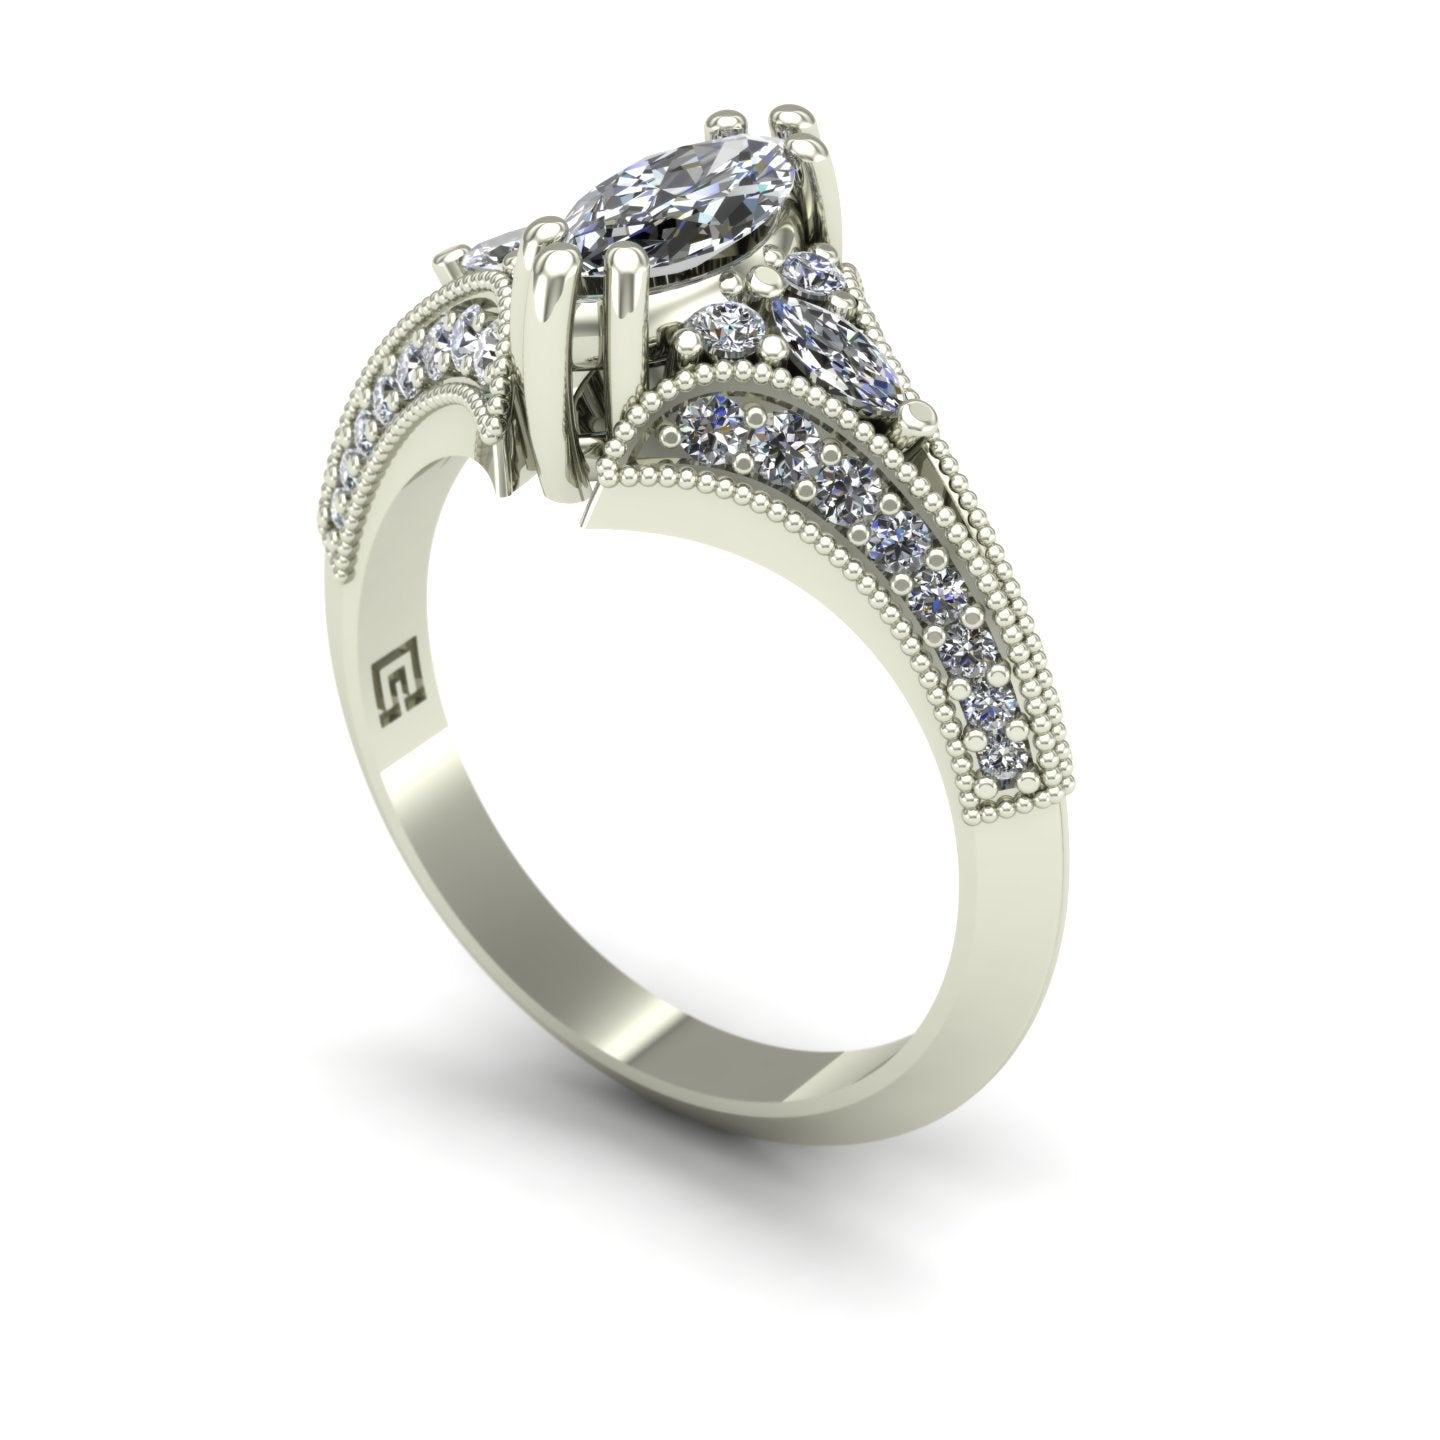 Marquise diamond engagement ring in 14k white gold